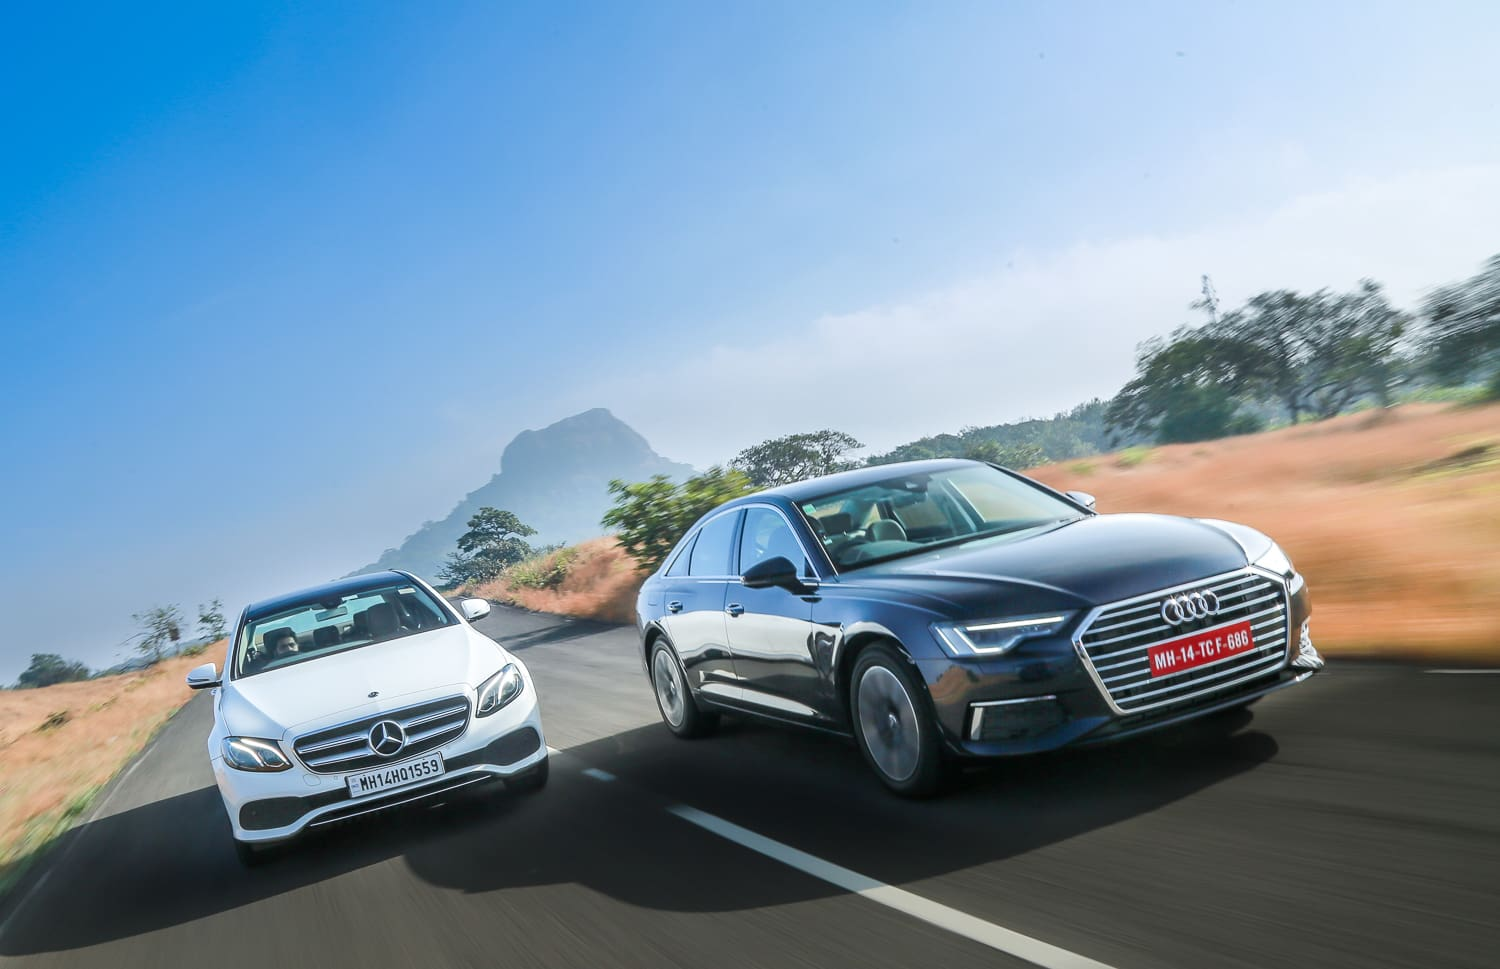 Audi A6 vs Mercedes-Benz E 220d: Comparison Review